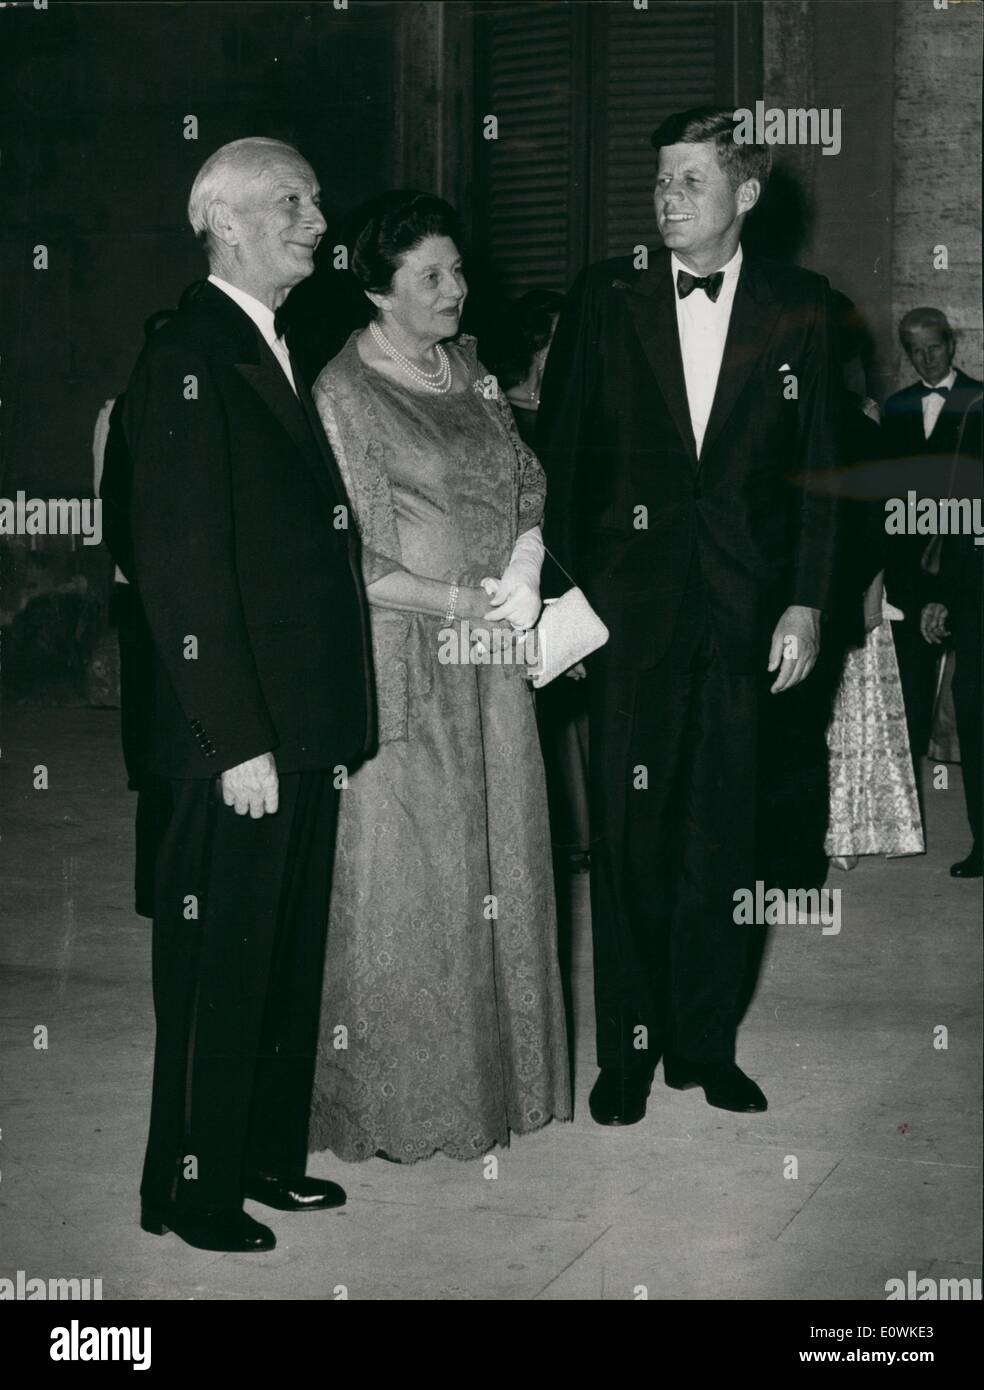 Jul. 07, 1963 - Kennedy, in black tie & tuxedo, with President & Mrs. Segni at dinner for Kennedy at Quirinal Palace Monday night. - Stock Image